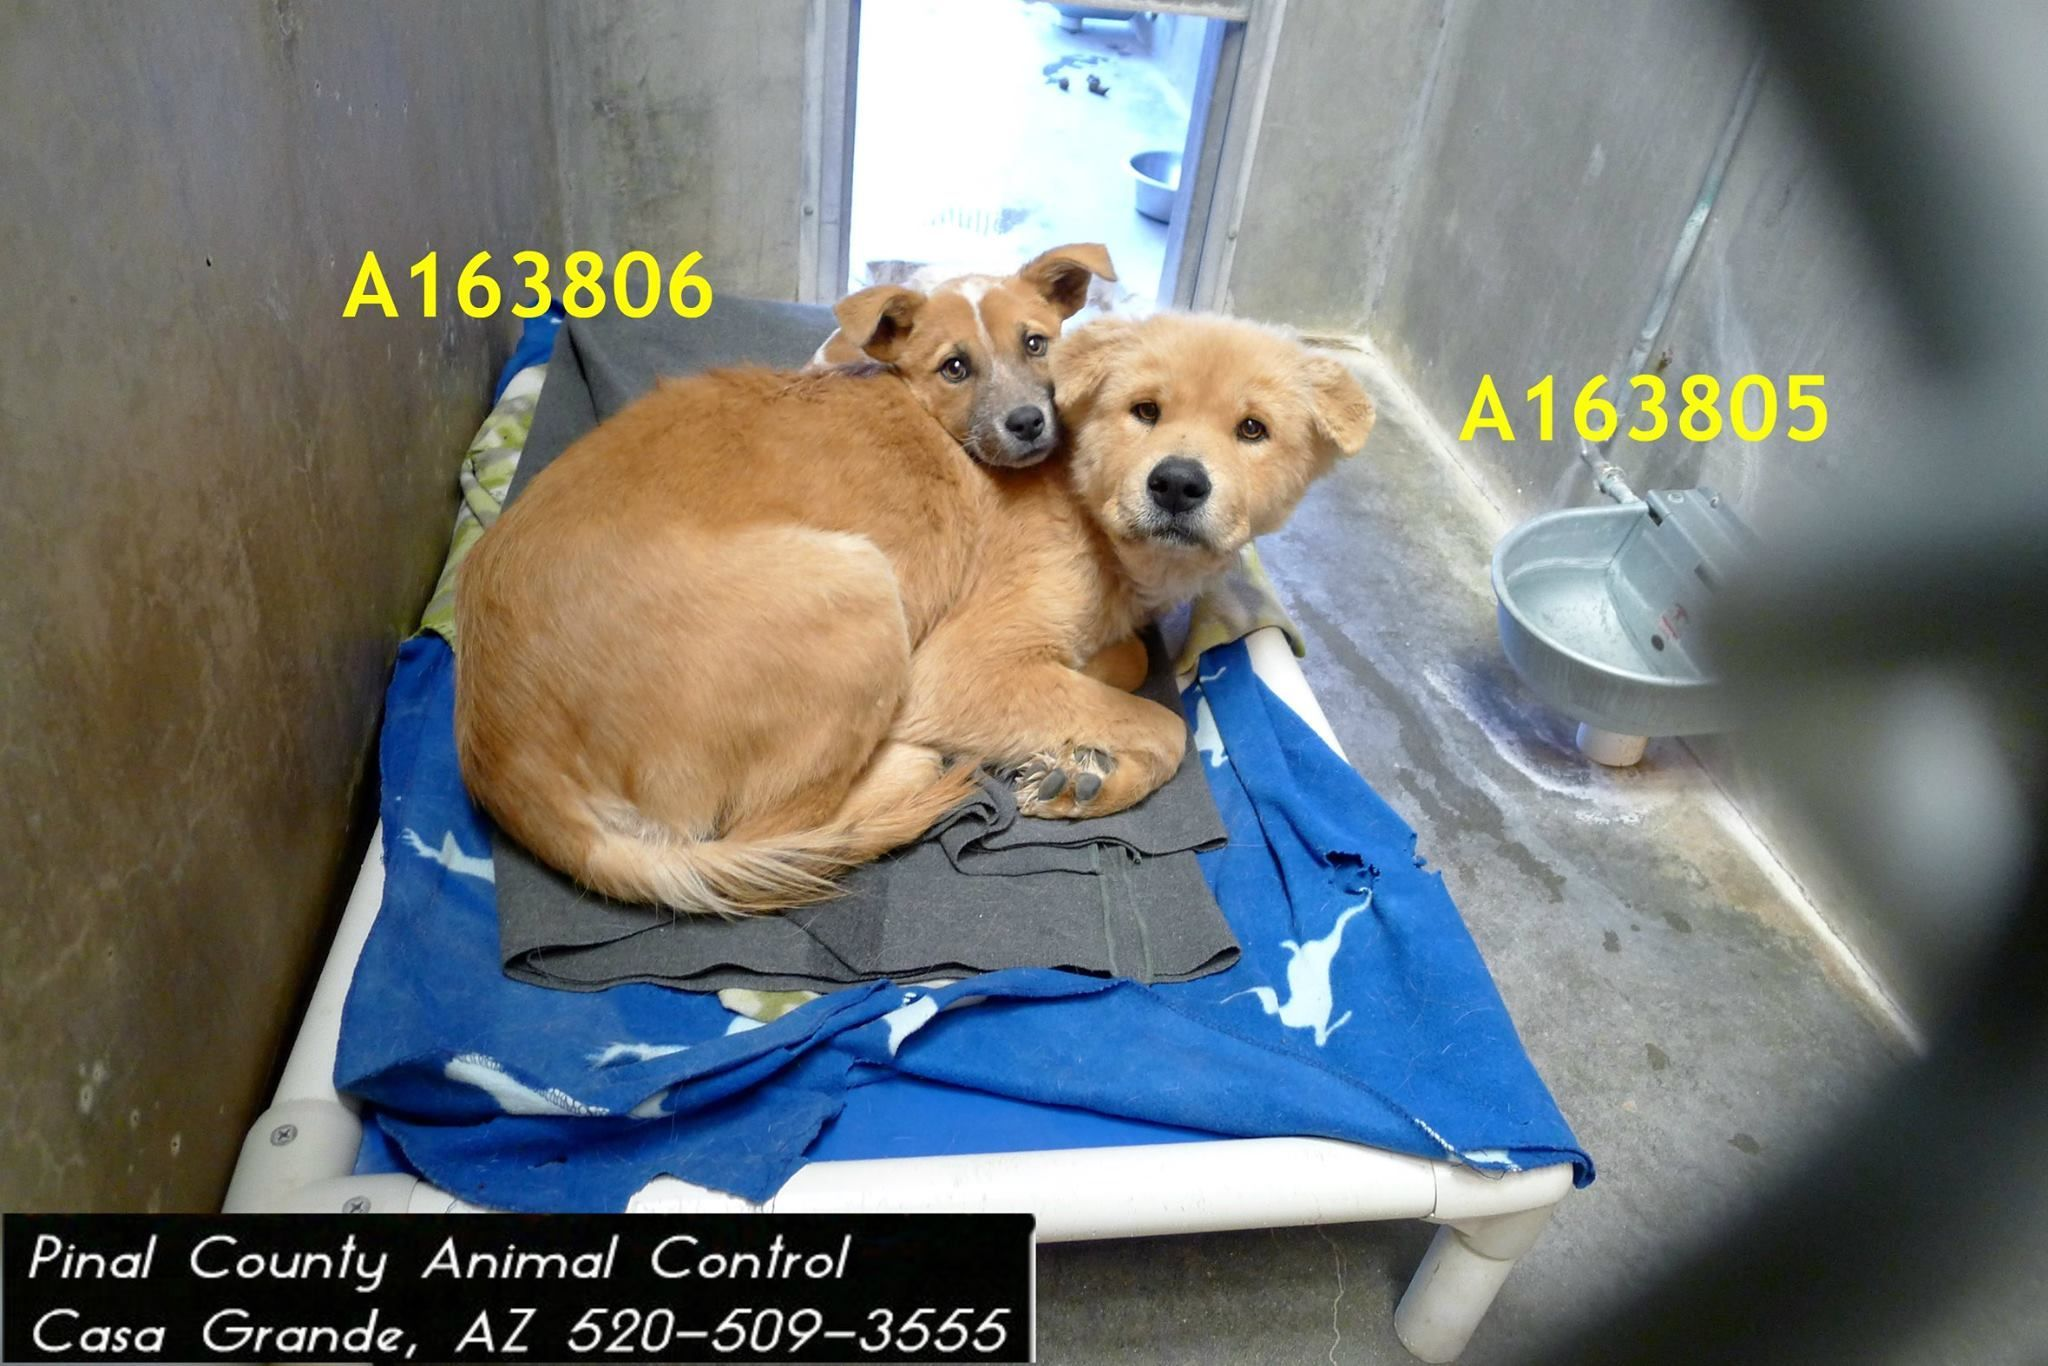 Pinal County Animal Shelter Animals NEED **EUTH LISTED FOR 01/15/15** ID#A163805...,  #Animal #animals #County #EUTH #IDA163805 #listed #Pinal #Shelter #unknownanimalslist